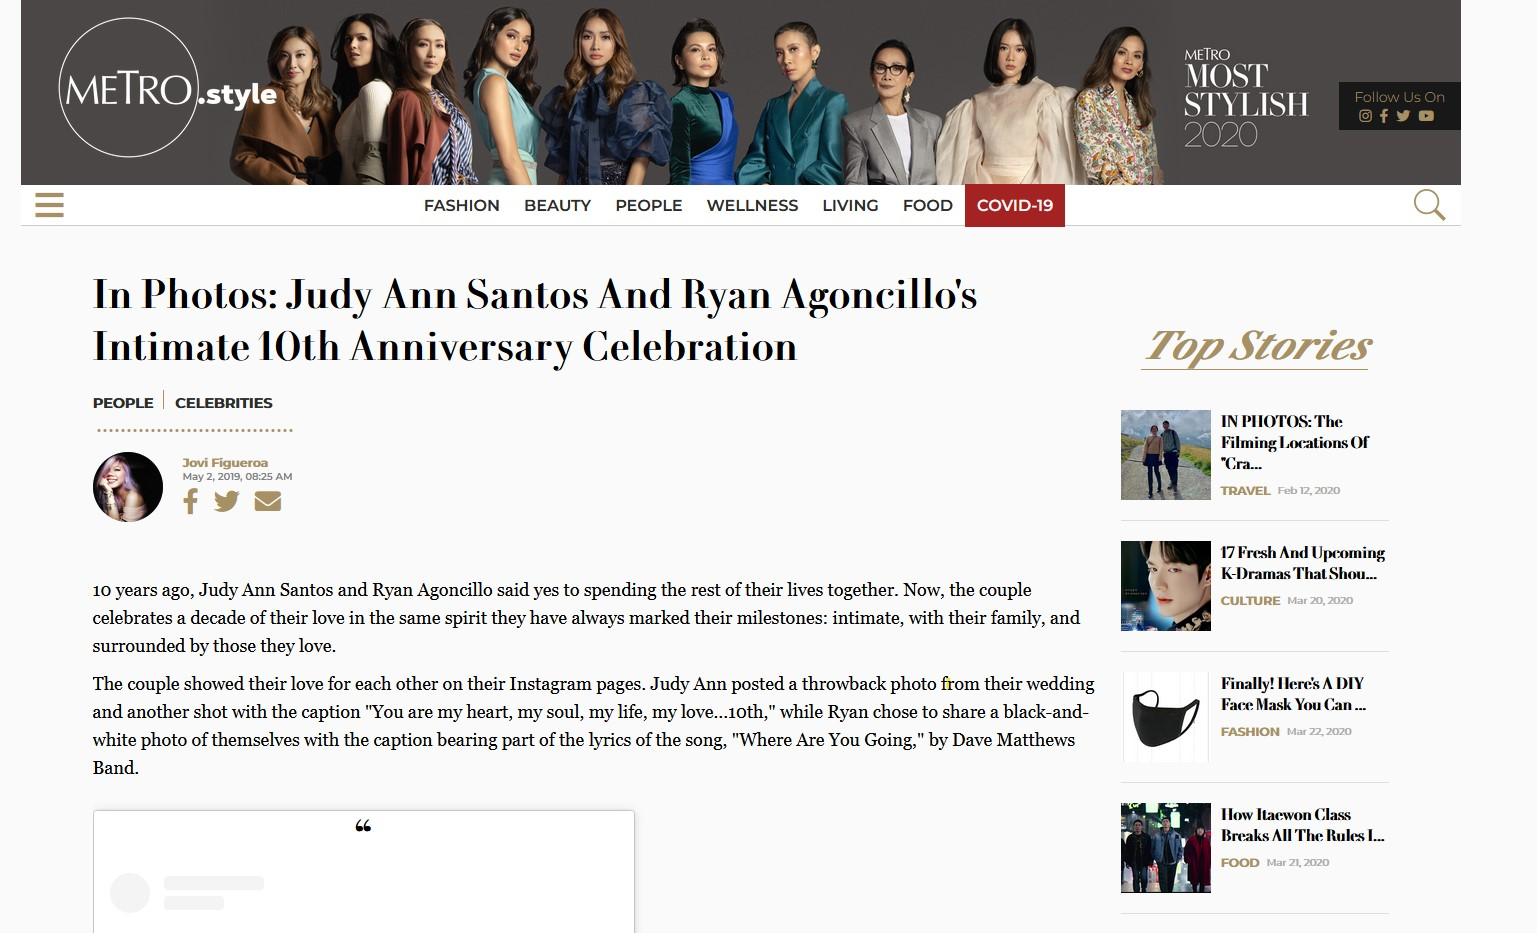 Ryan And Judy Ann Agoncillo 10th year wedding anniversary 2019